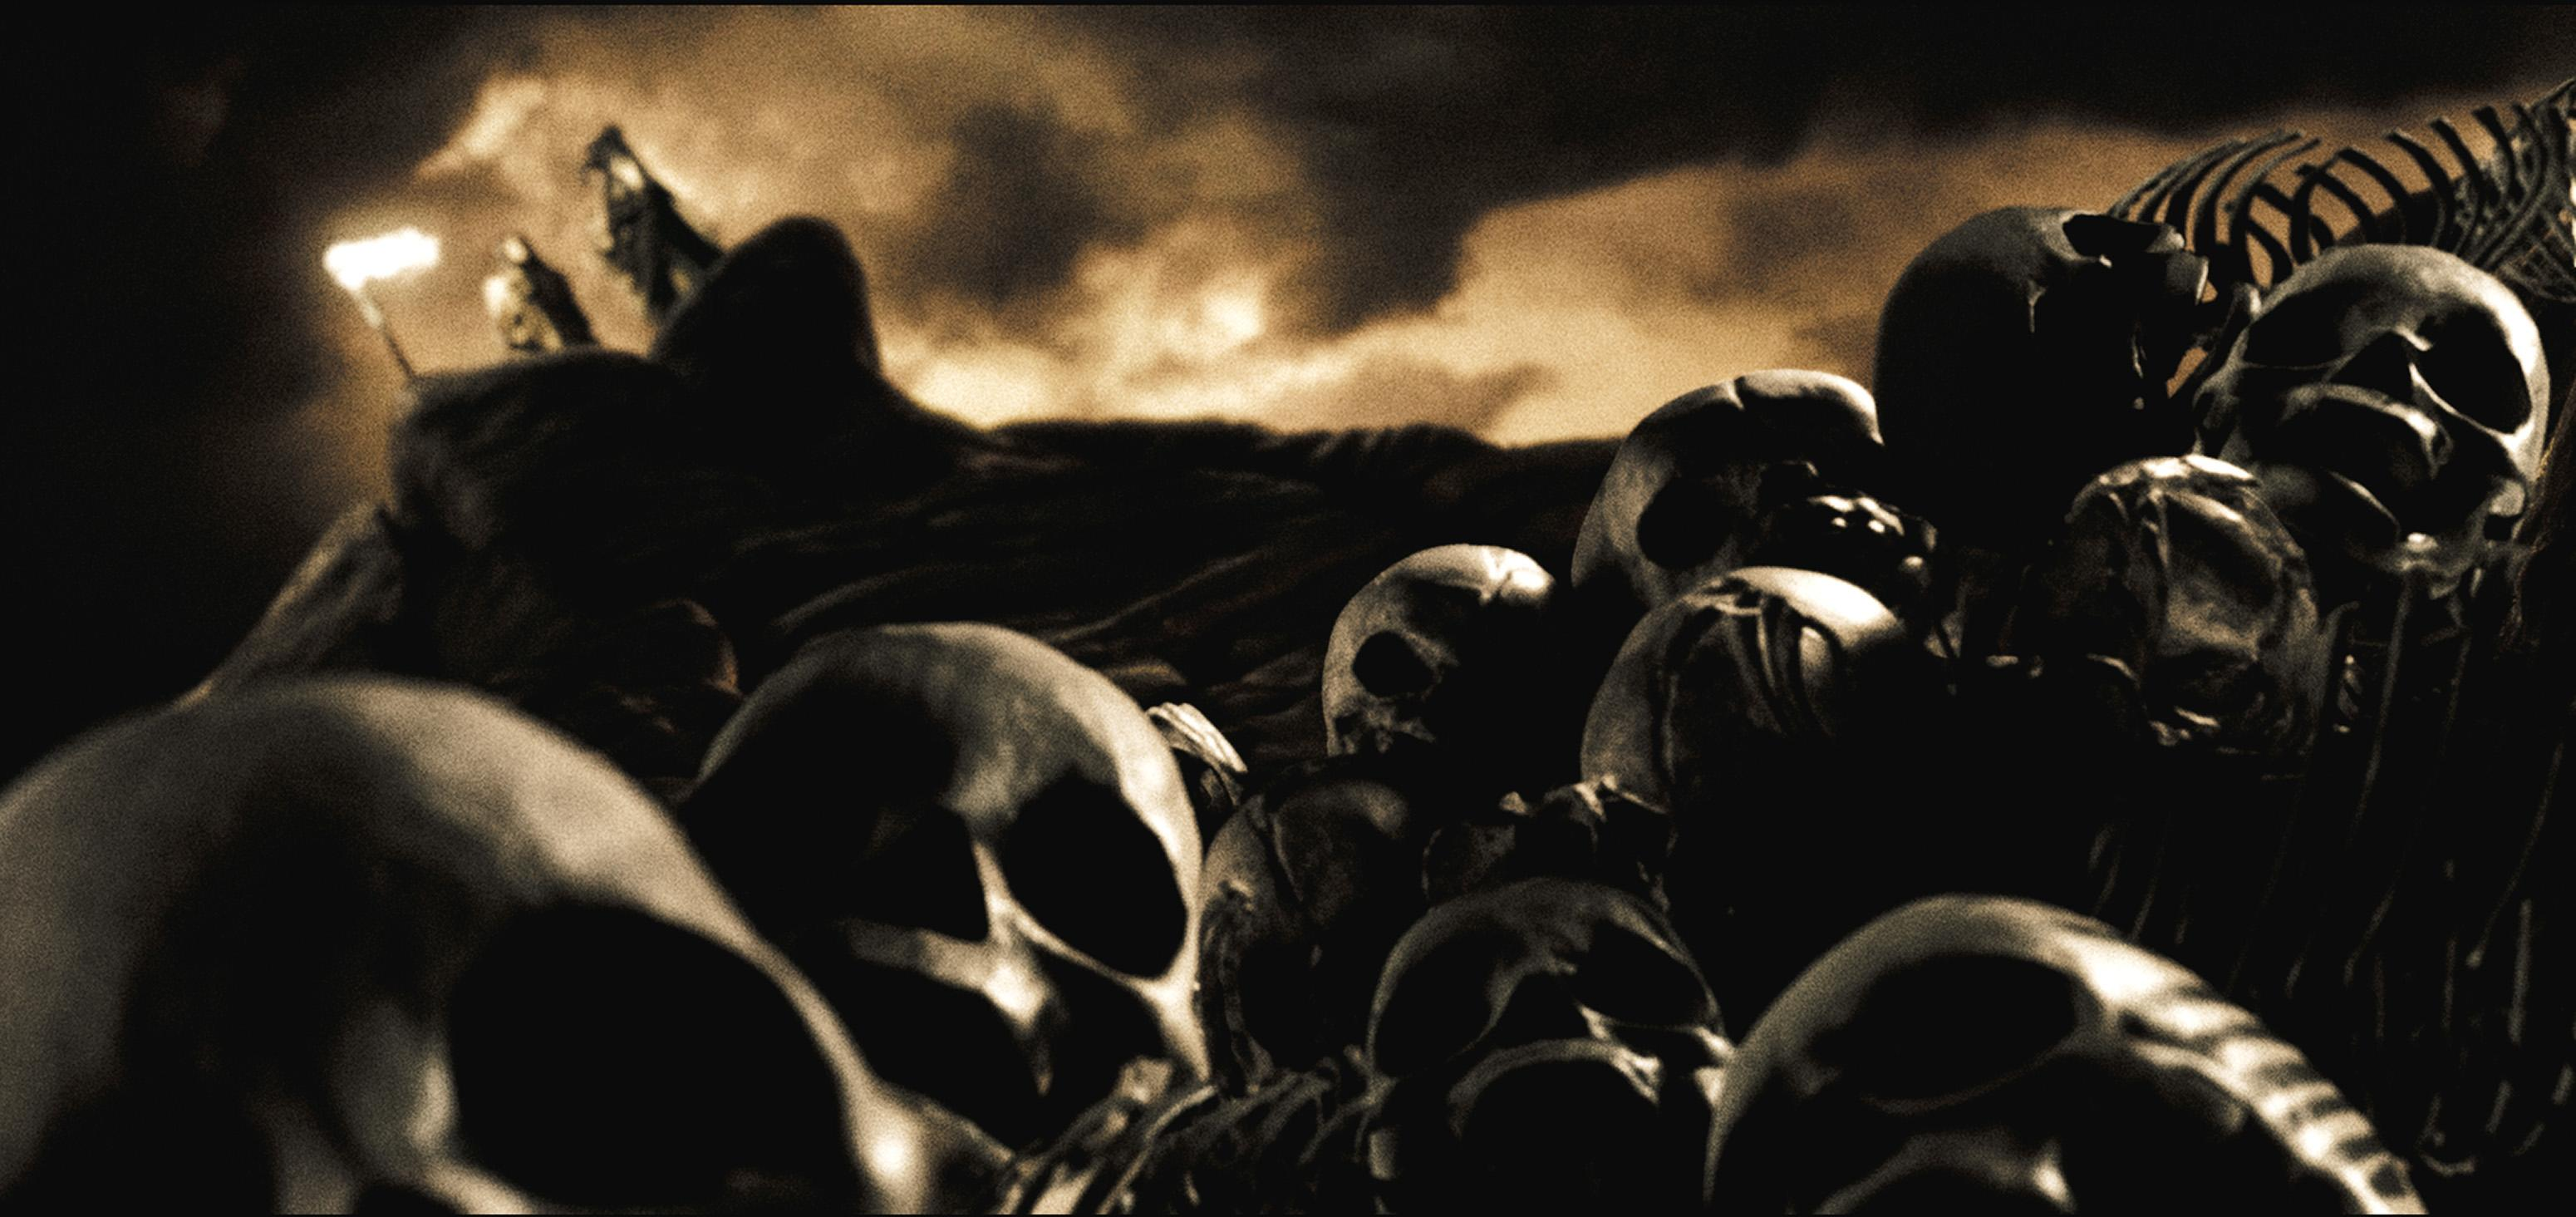 300 The Spartan Baby Inspector (xxl) Skull wallpaper #